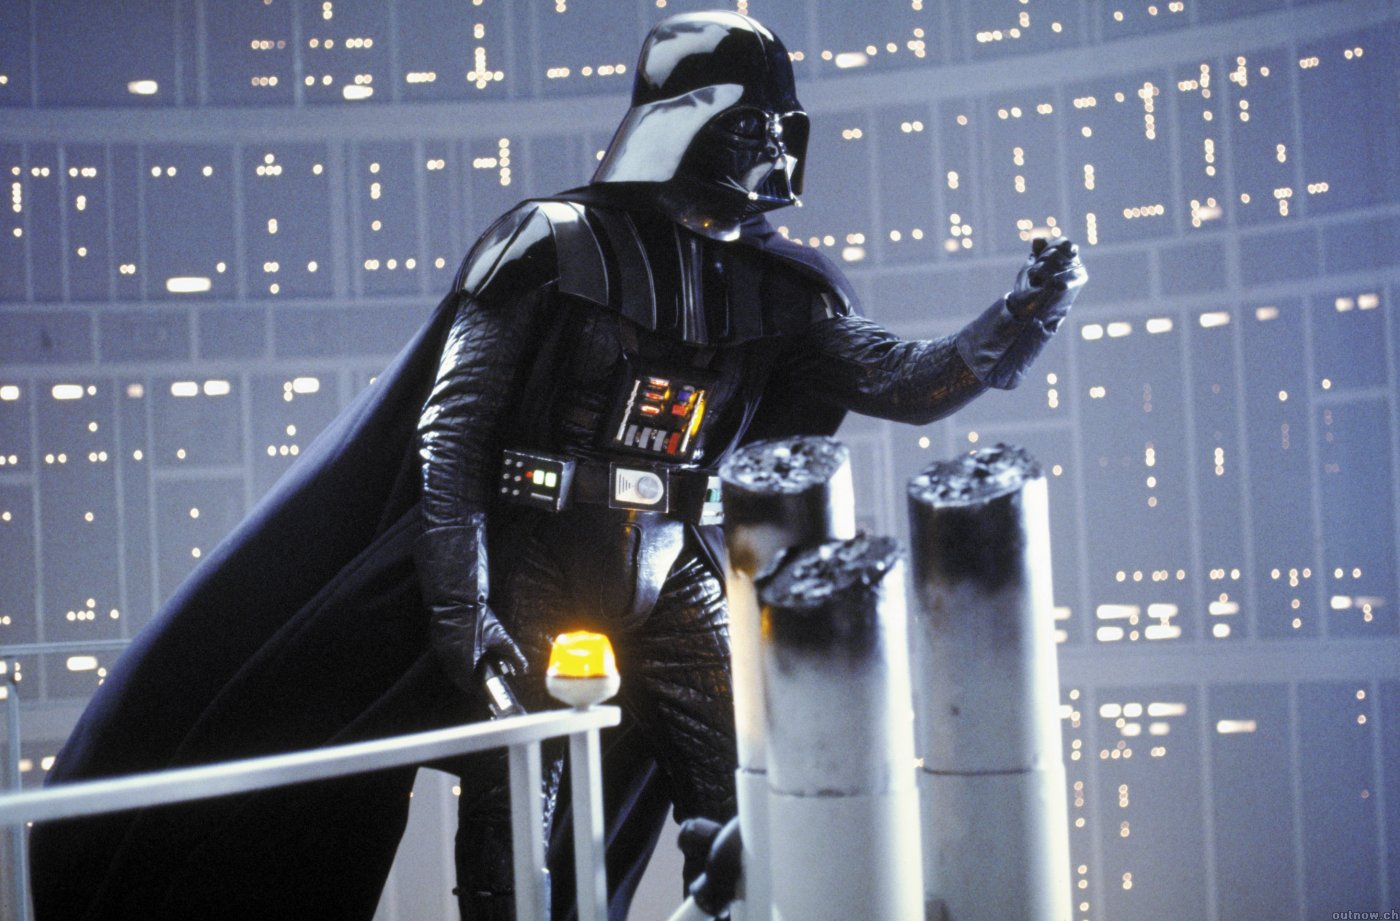 Movie - Star Wars  - Darth Vader - Episode 5 - The Empire Strikes Back - Bespin - Cloud City Wallpaper